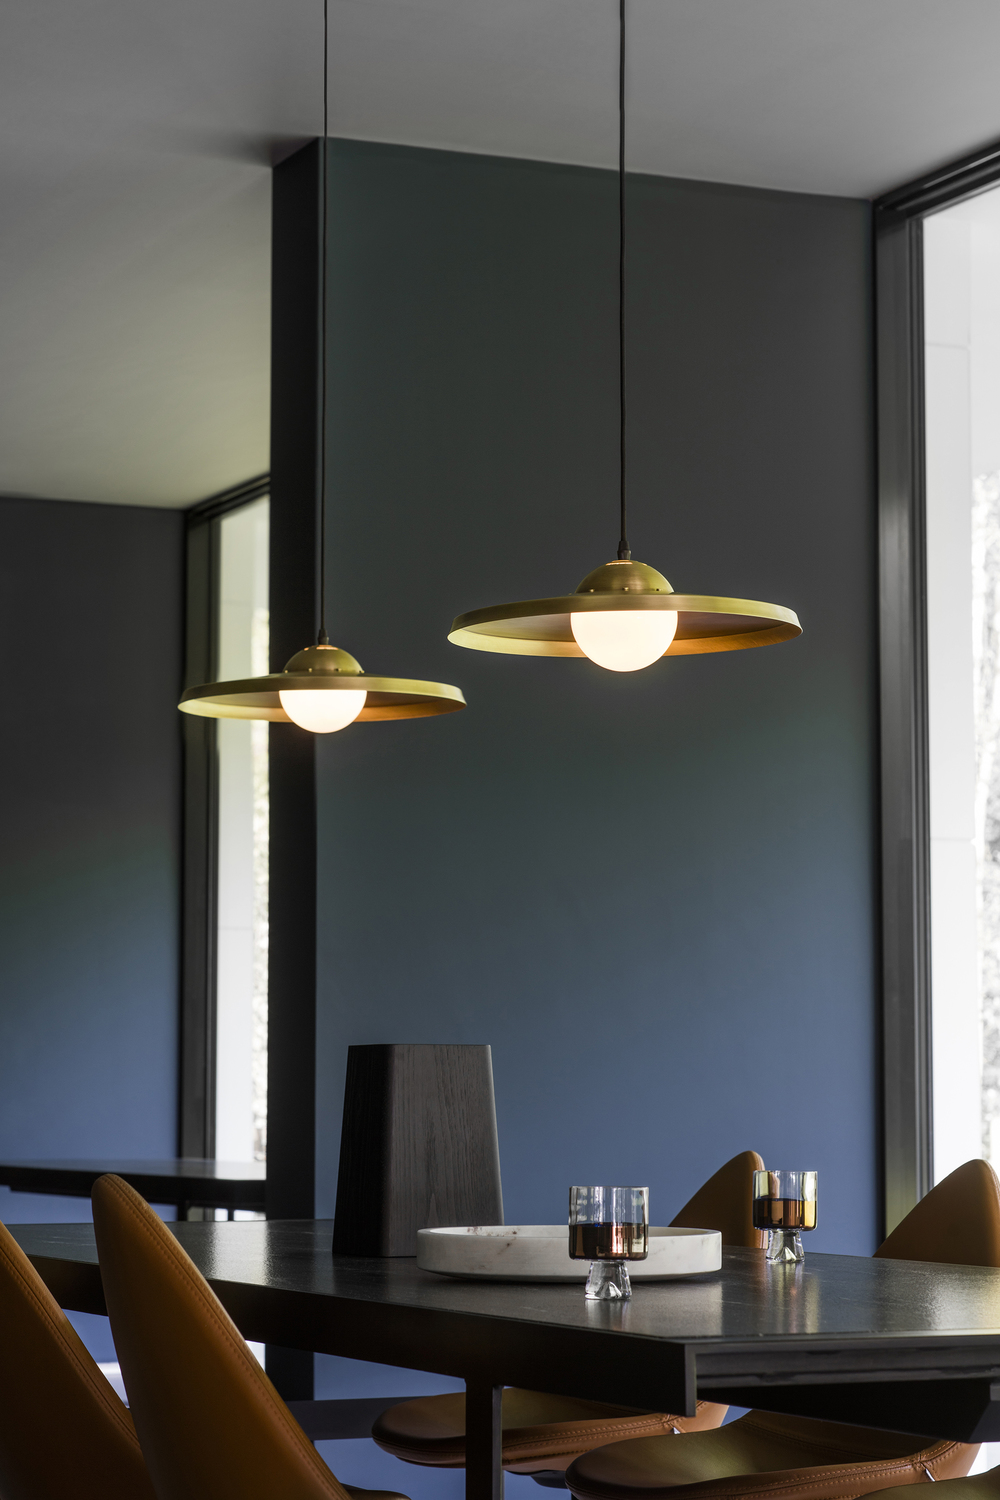 Sedge Pendant Light - <p>With a simple and sleek spun brass shade, the Sedge Pendant Lamp is finished by hand with understated brass industrial-inspired fixing details and a single central opal globe.</p>  | Matter of Stuff